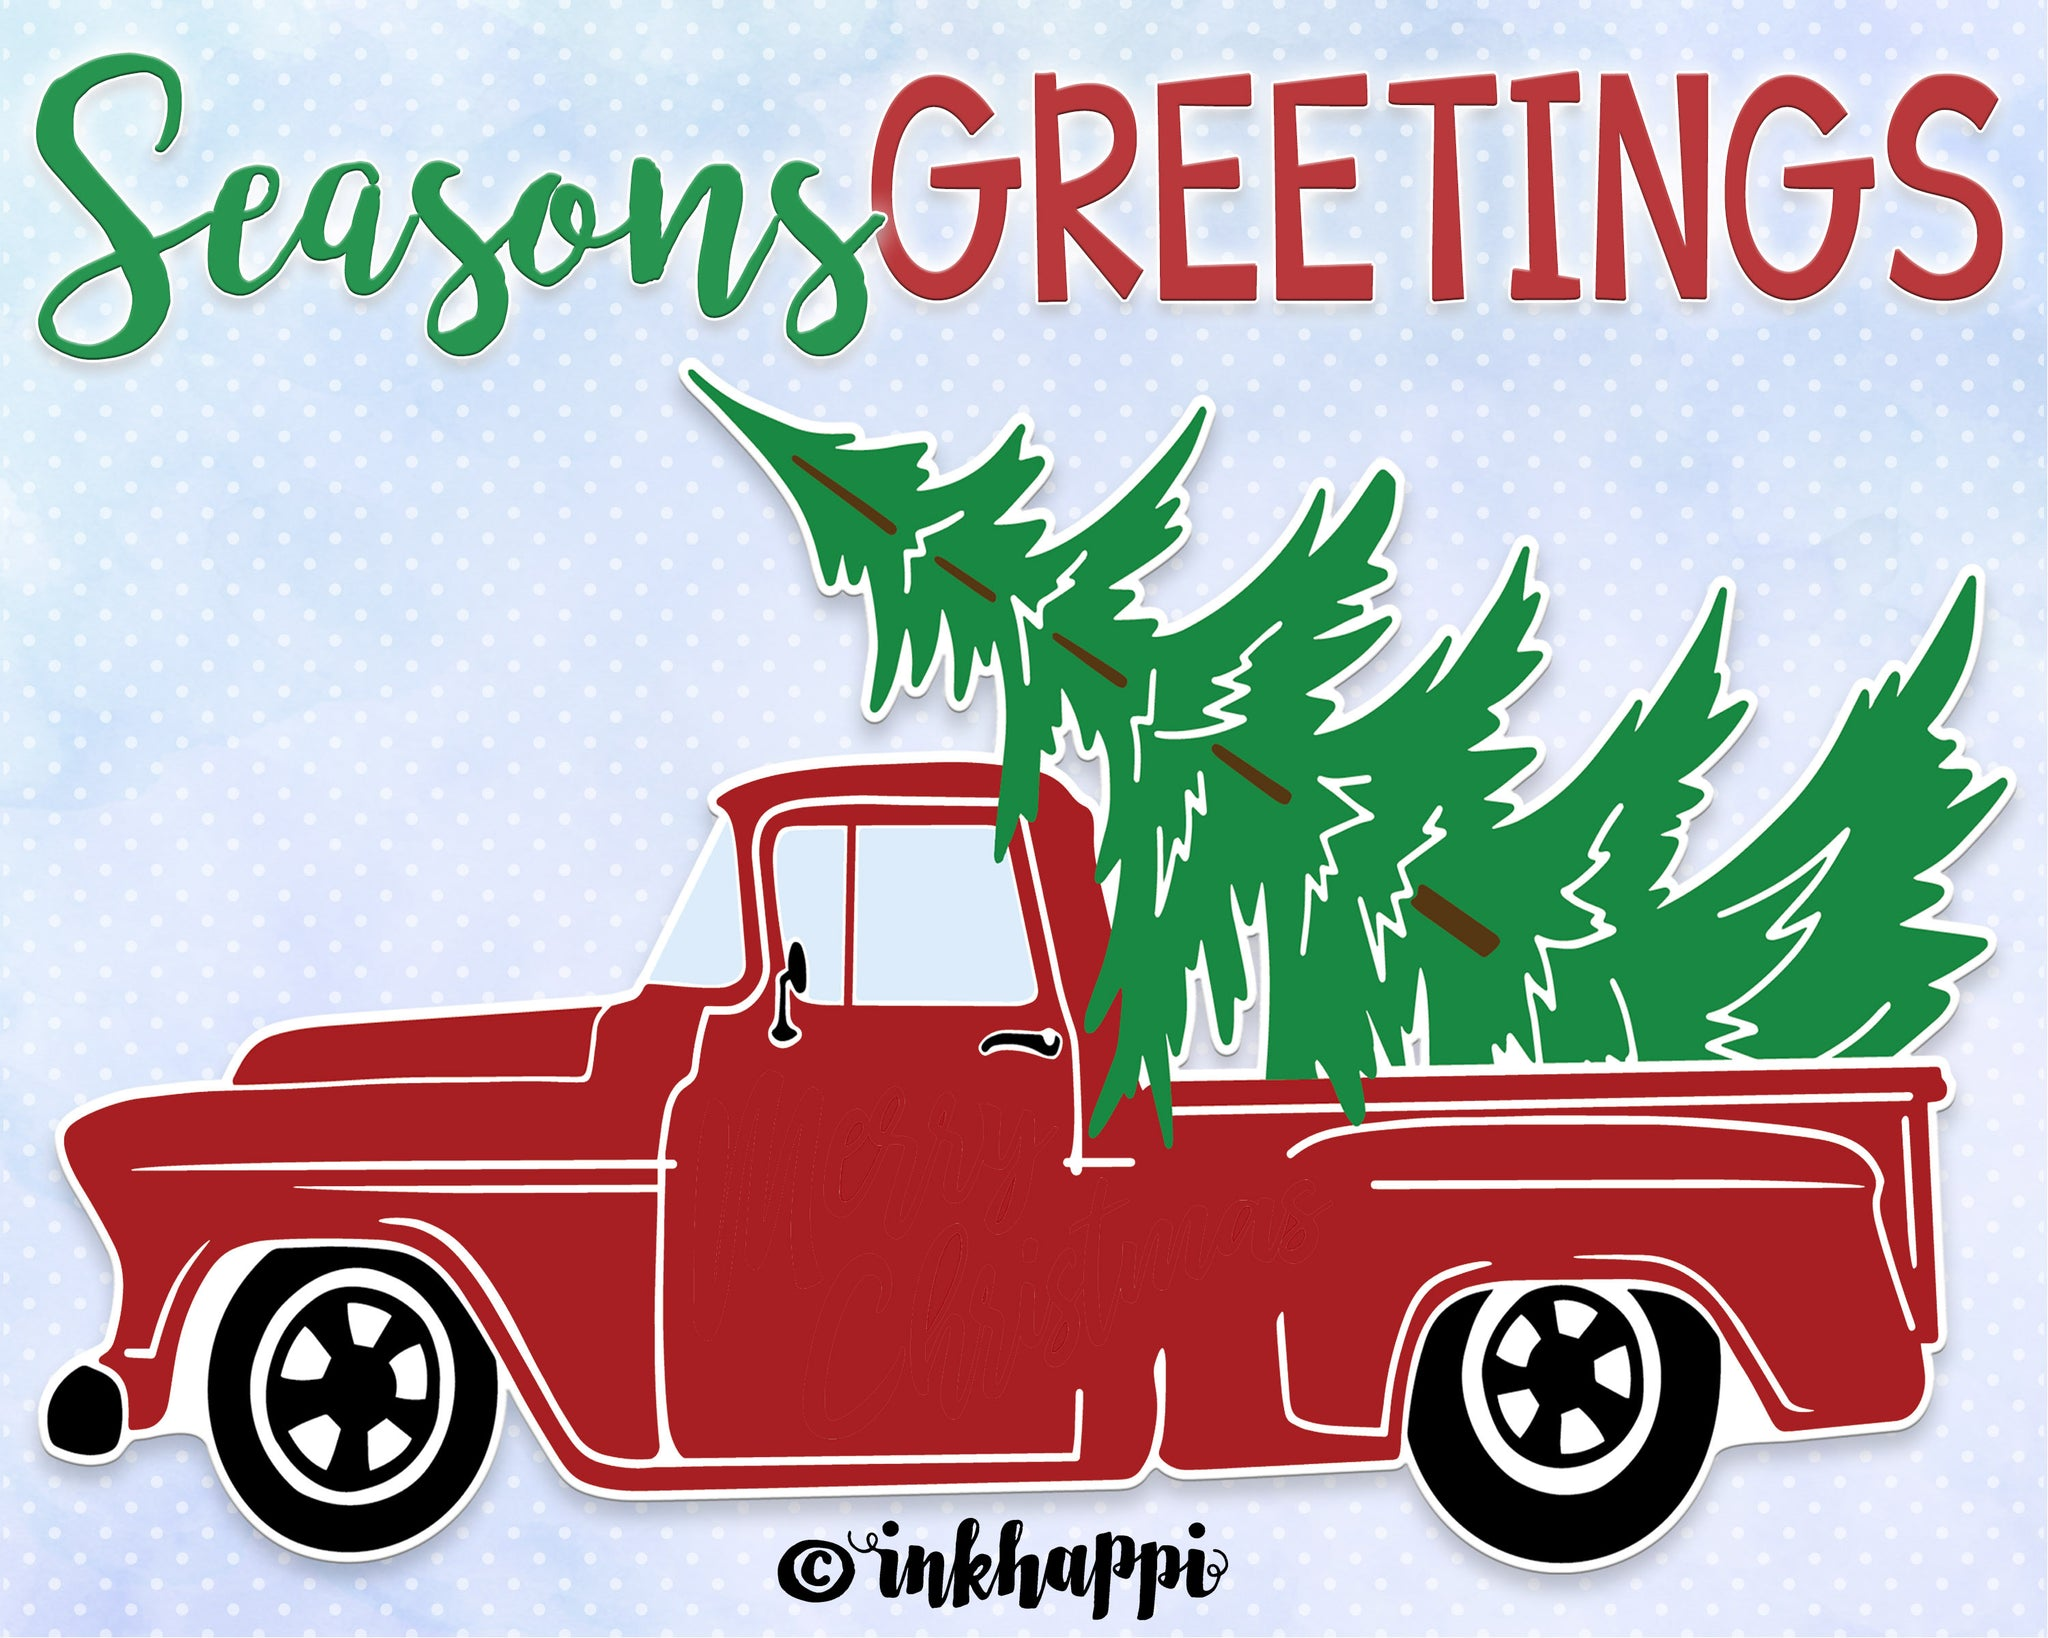 Seasons Greetings Holiday Truck